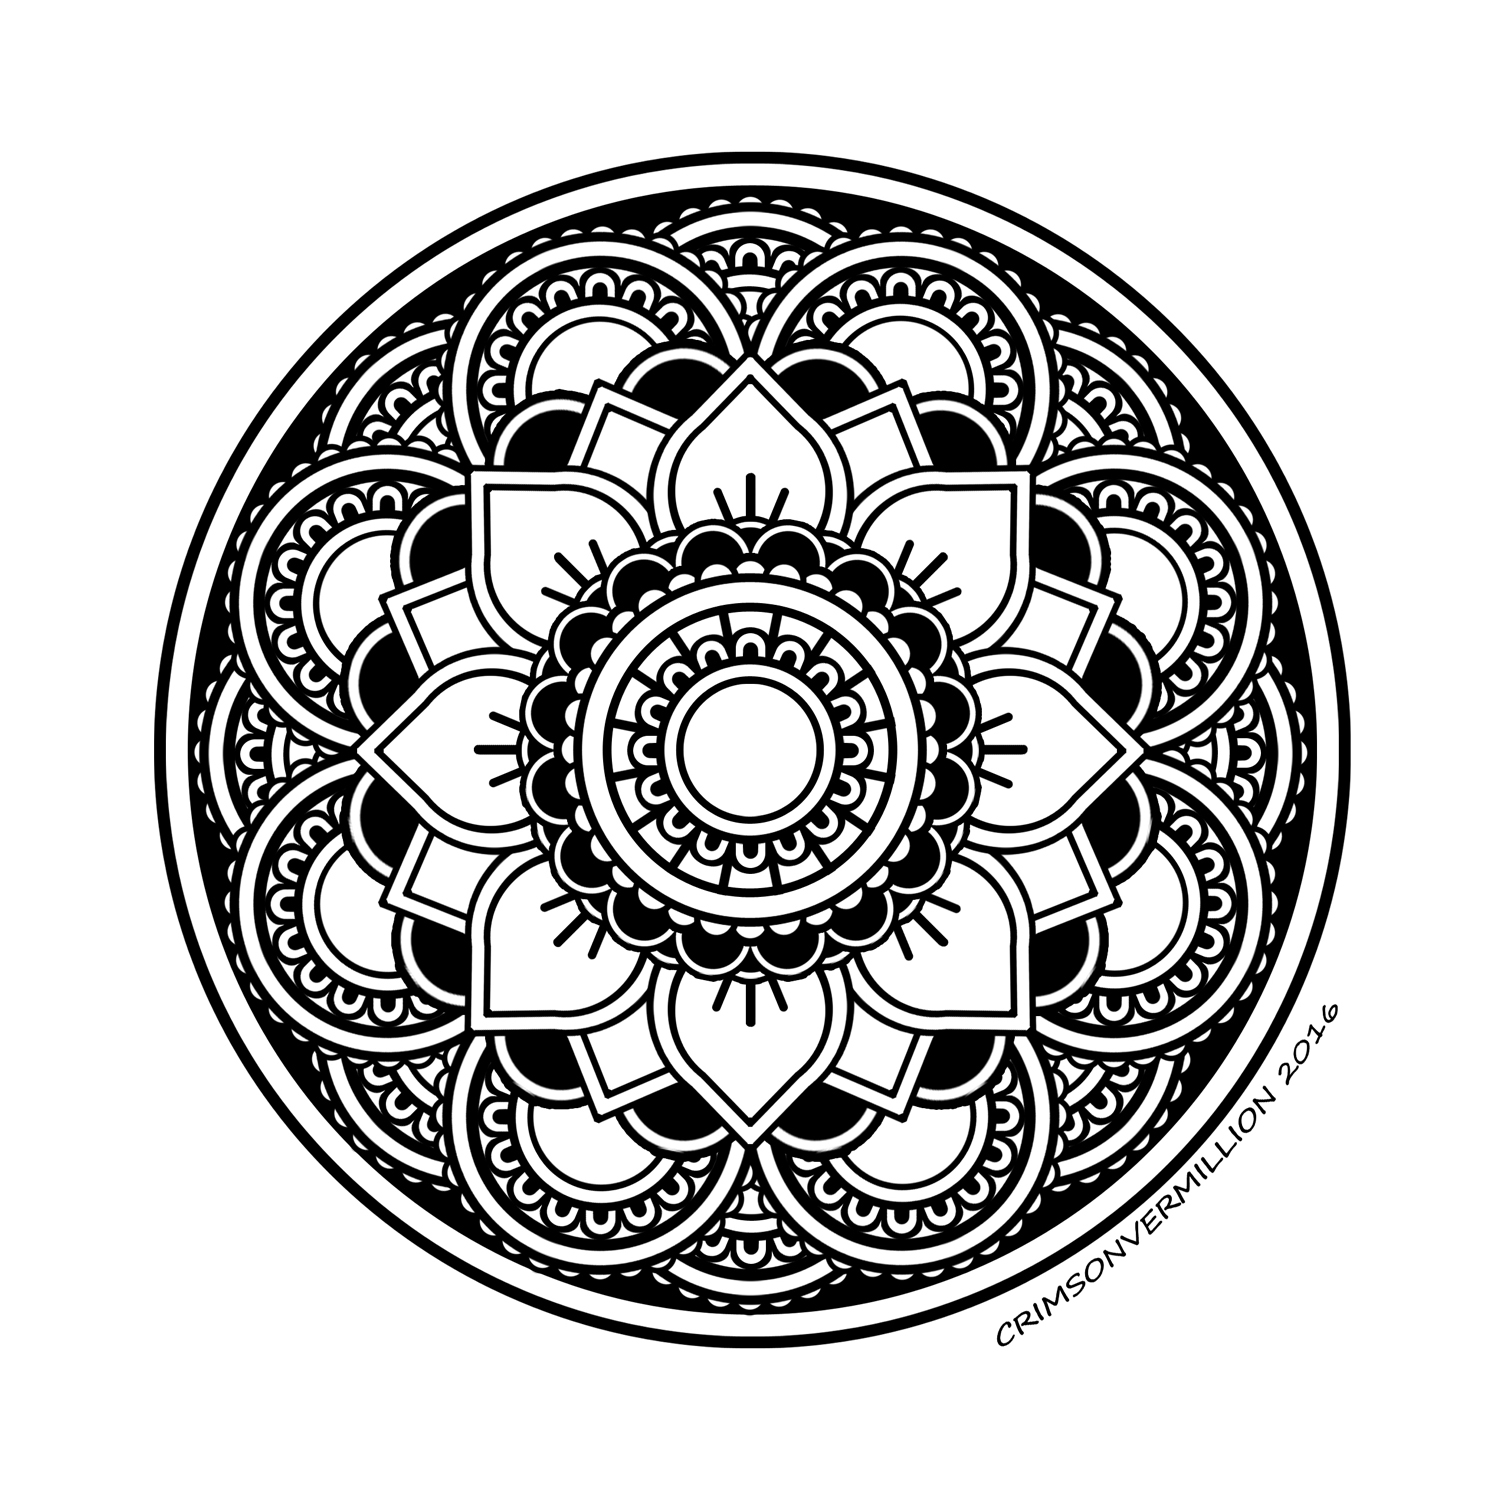 coloring mandala with color easy flower with leaves  simple mandalas  100 mandalas color with mandala coloring